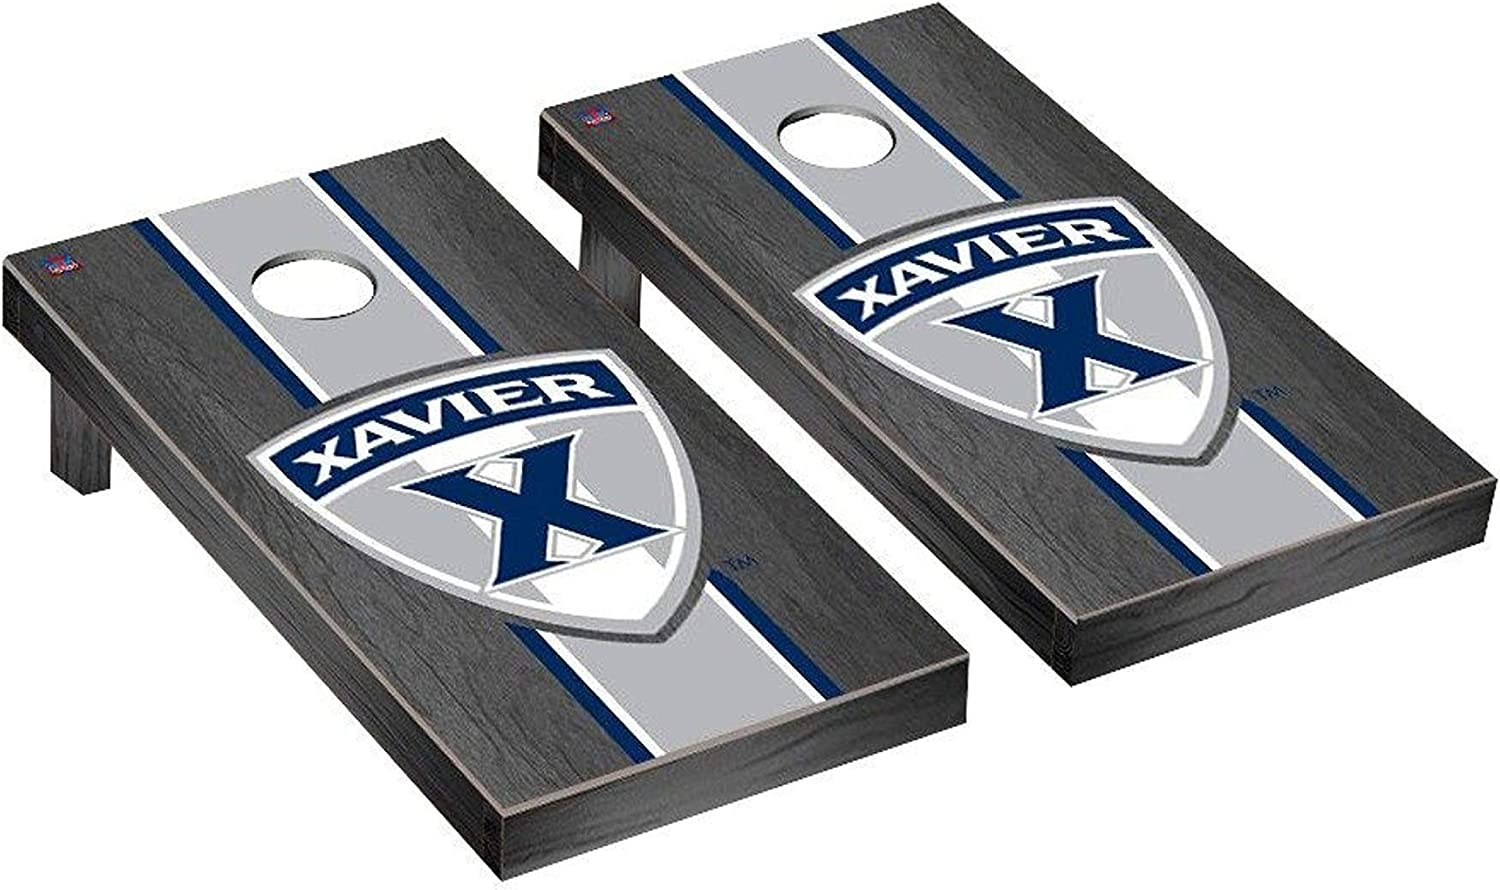 Xavier University三銃士Cornhole Game Set マルチカラー